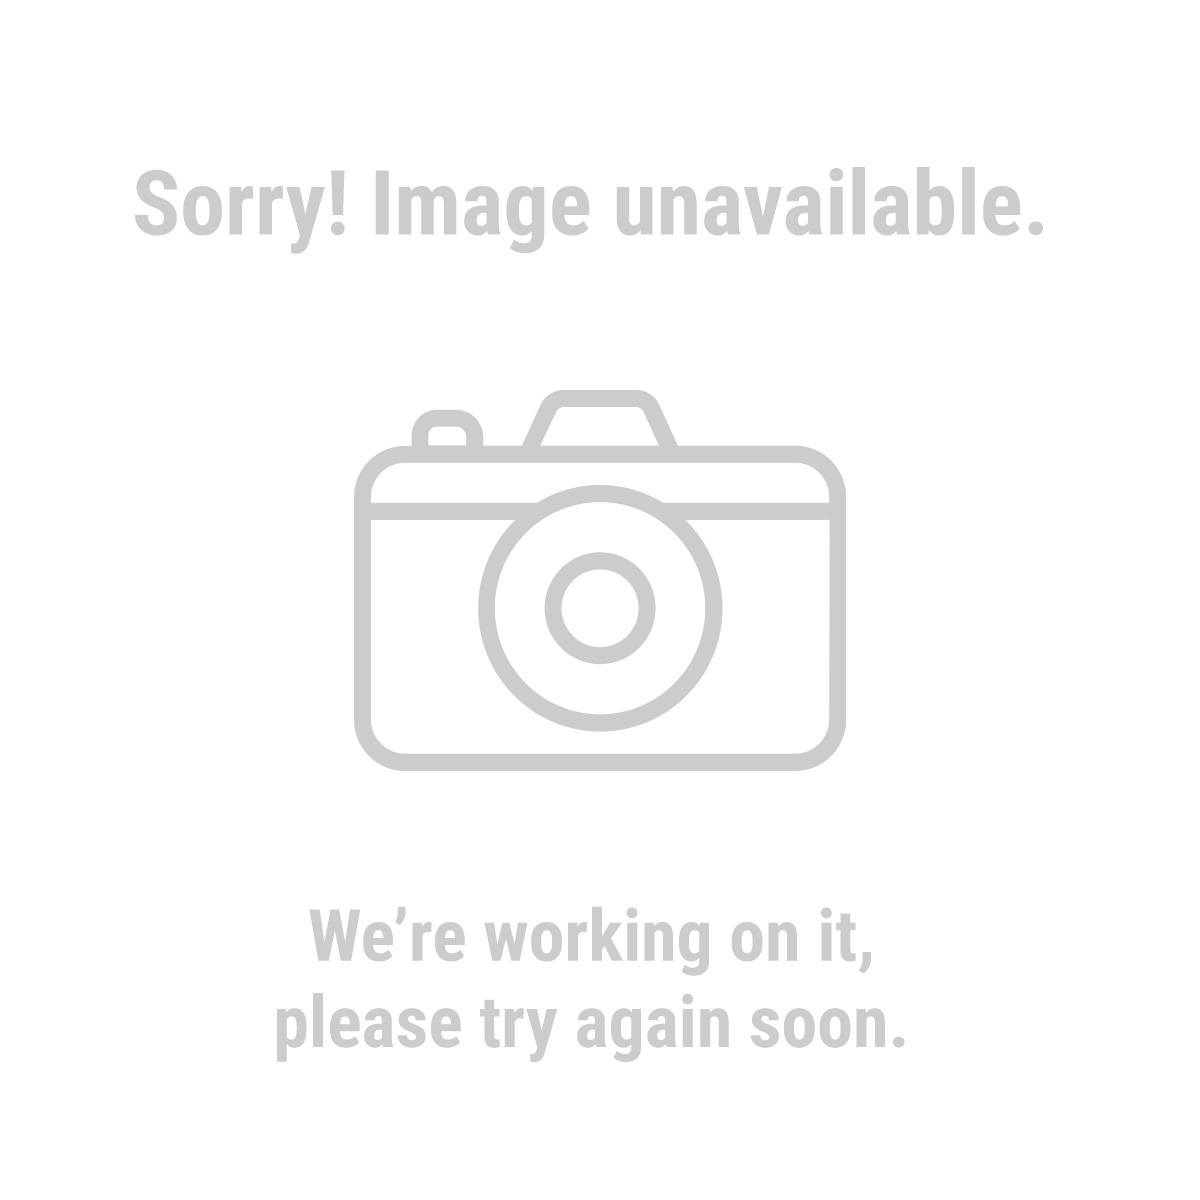 U.S. General 67681 56 in, 11 Drawer Industrial Roller Cabinet